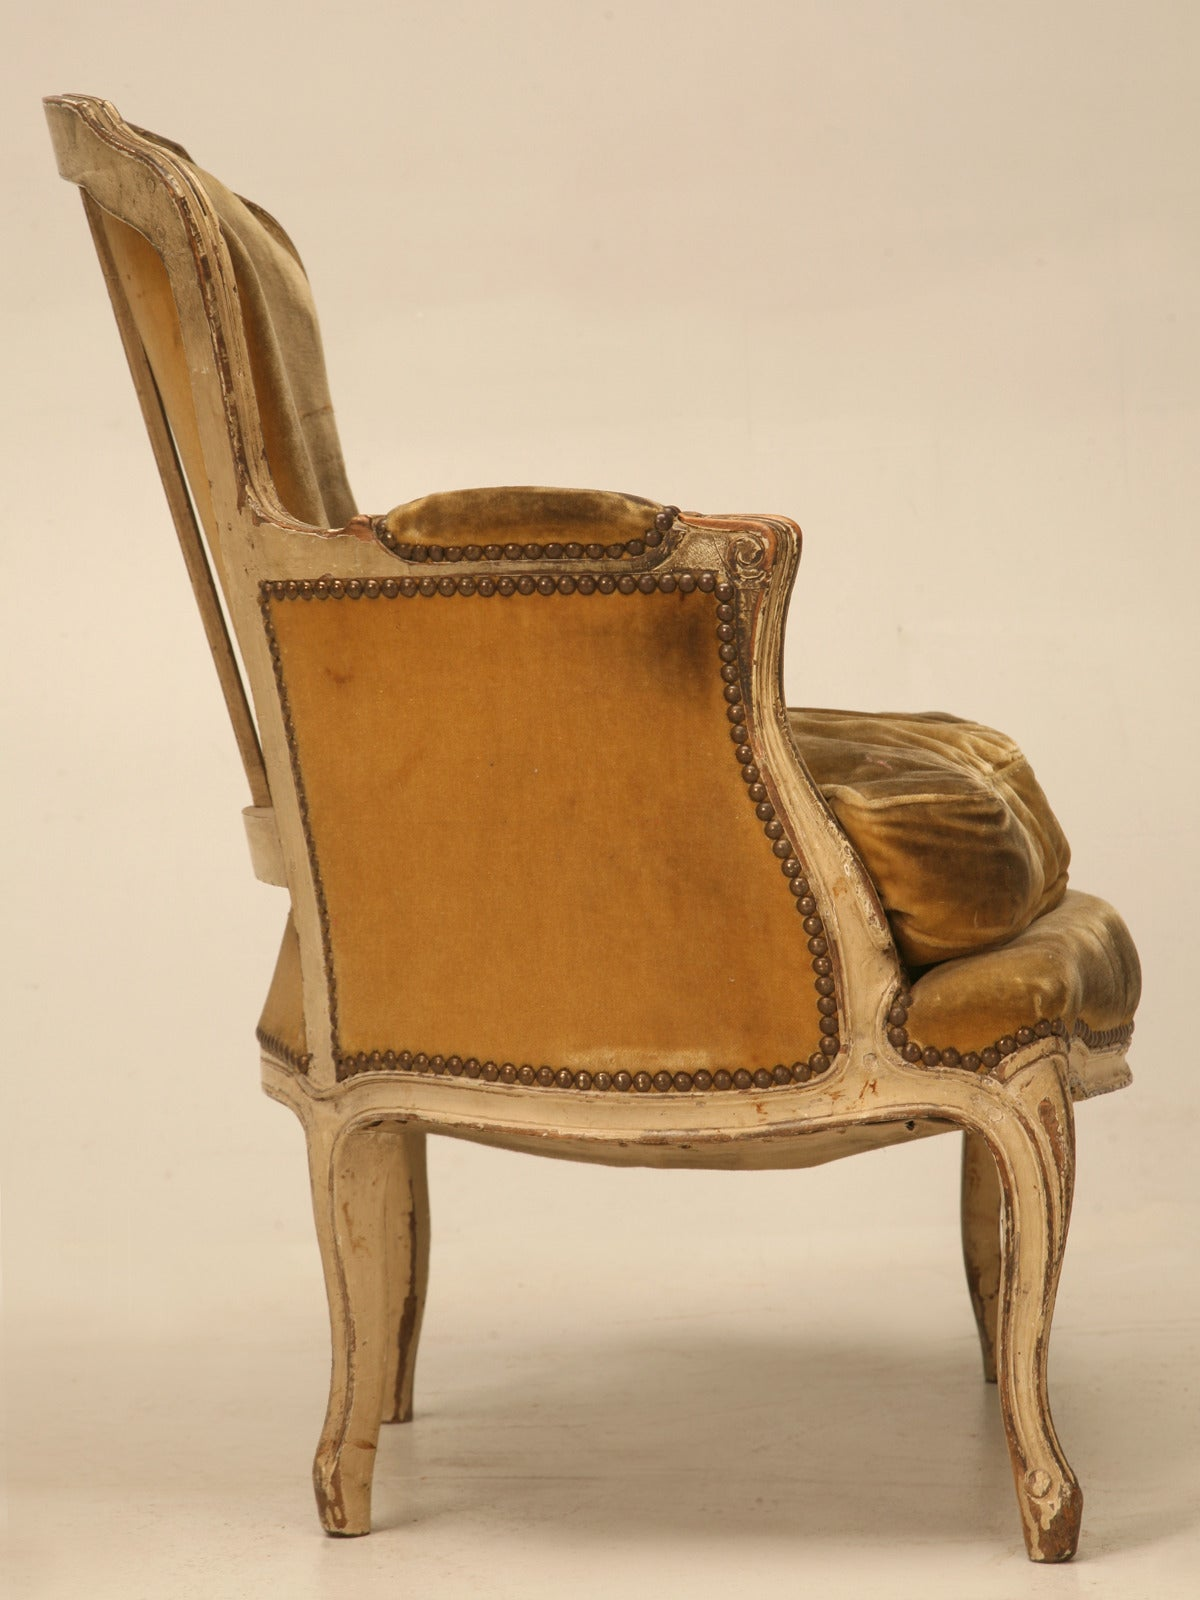 Antique French Louis XV Style Bergere Chair in Old Paint at 1stdibs